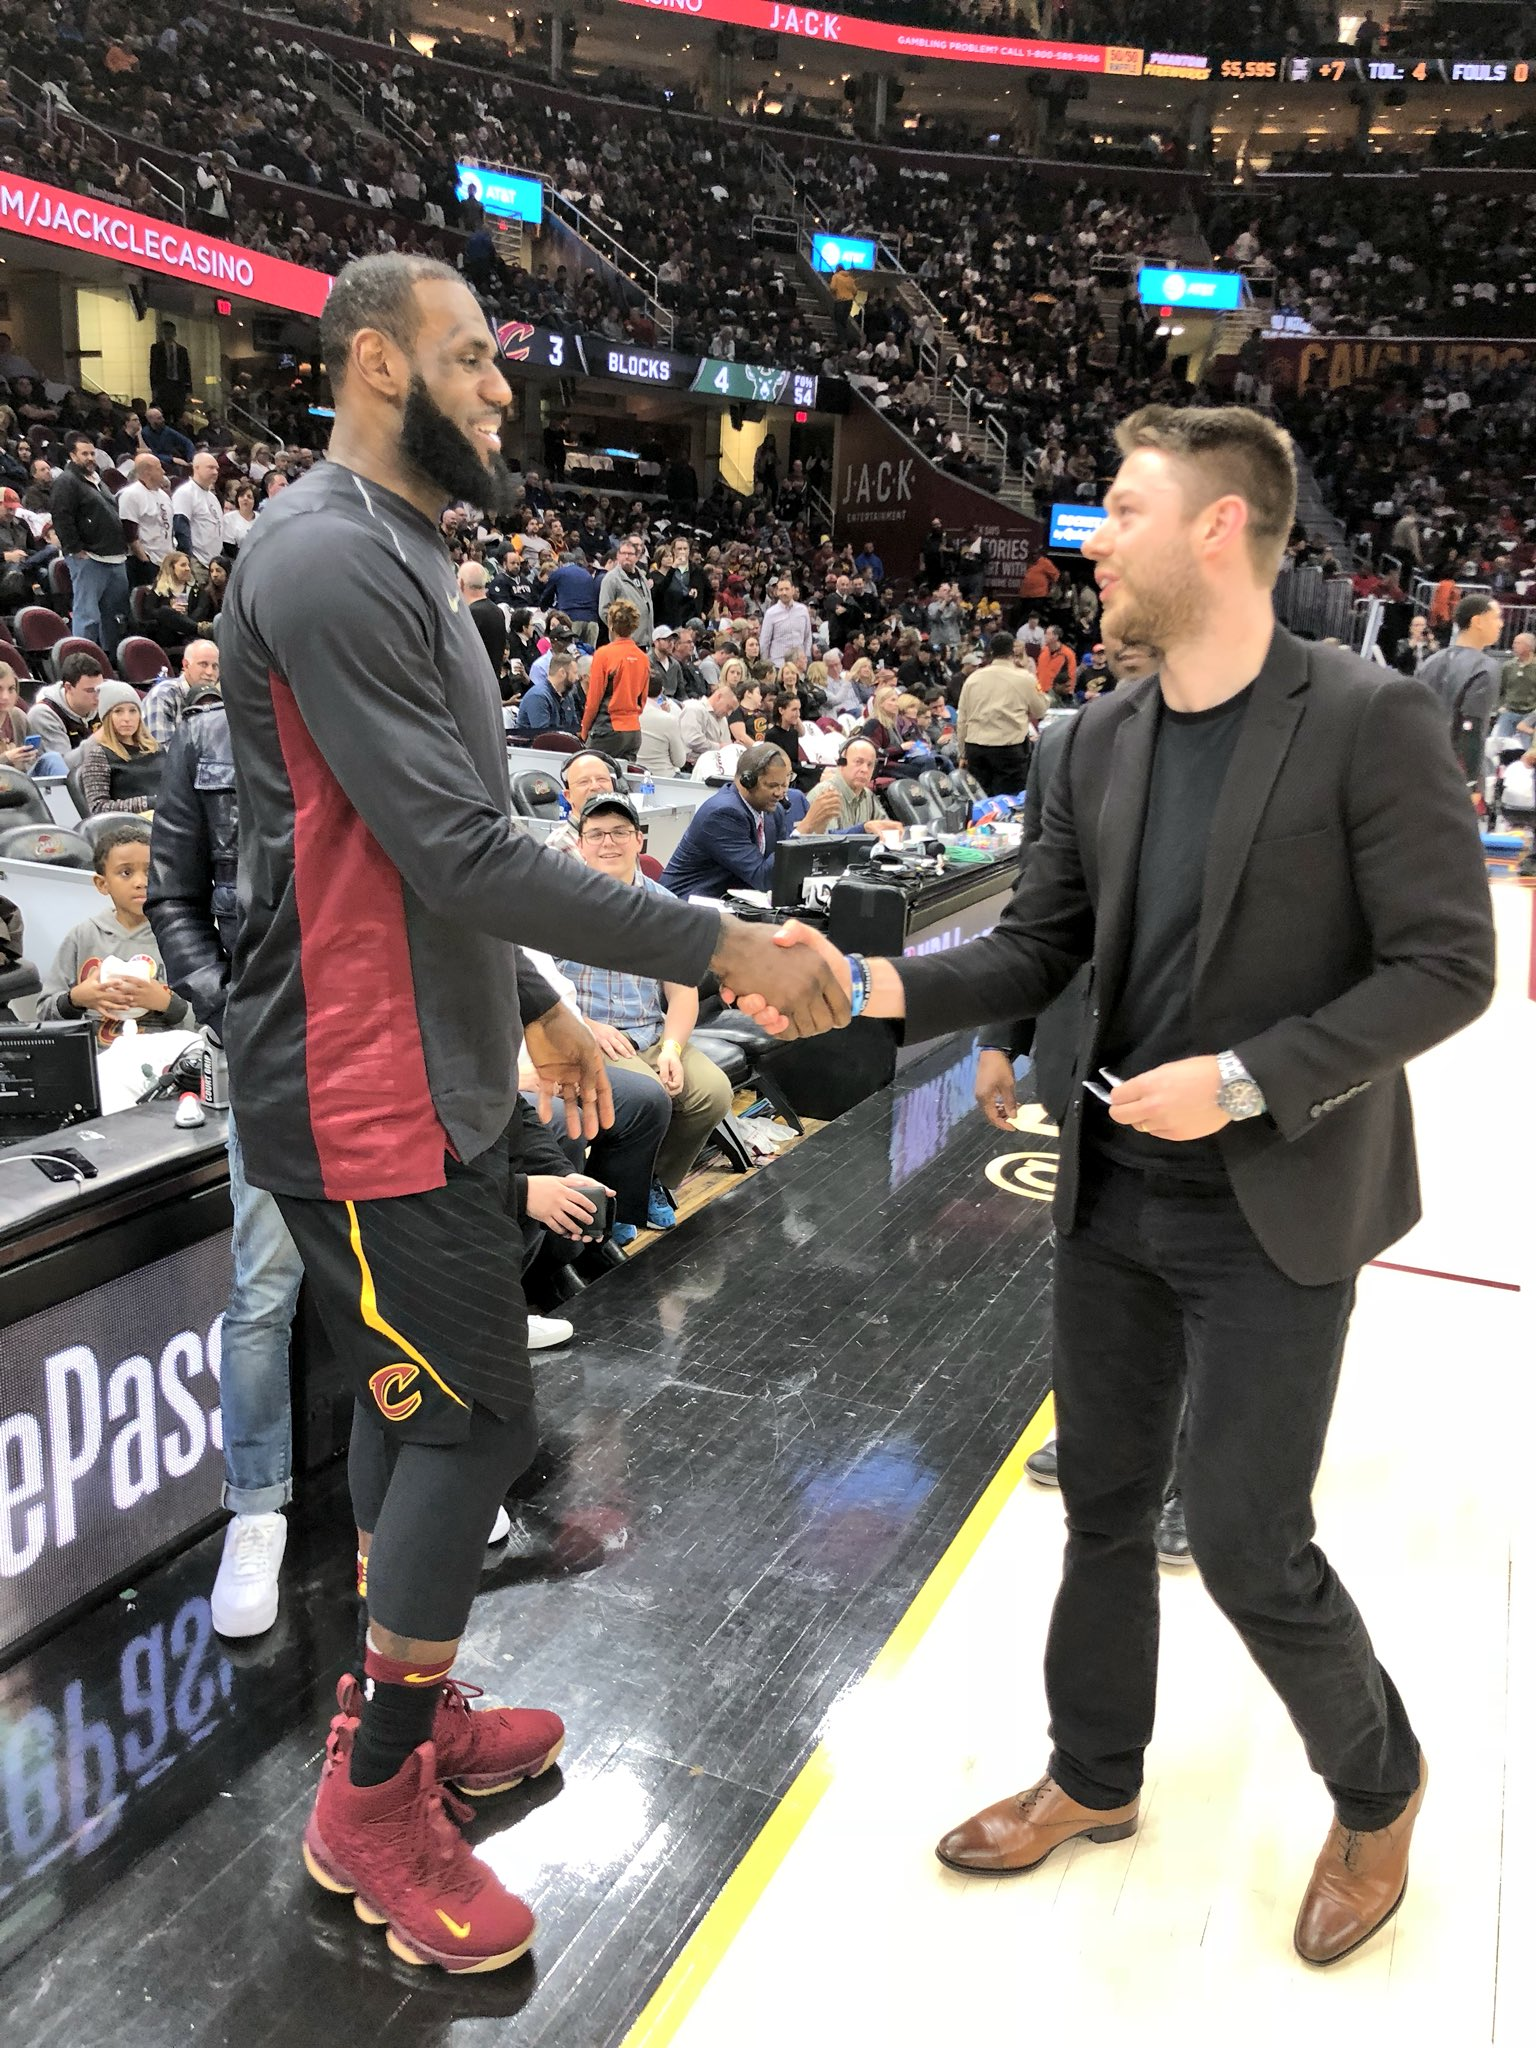 LJ x DELLY! https://t.co/I8lEqJYtzw